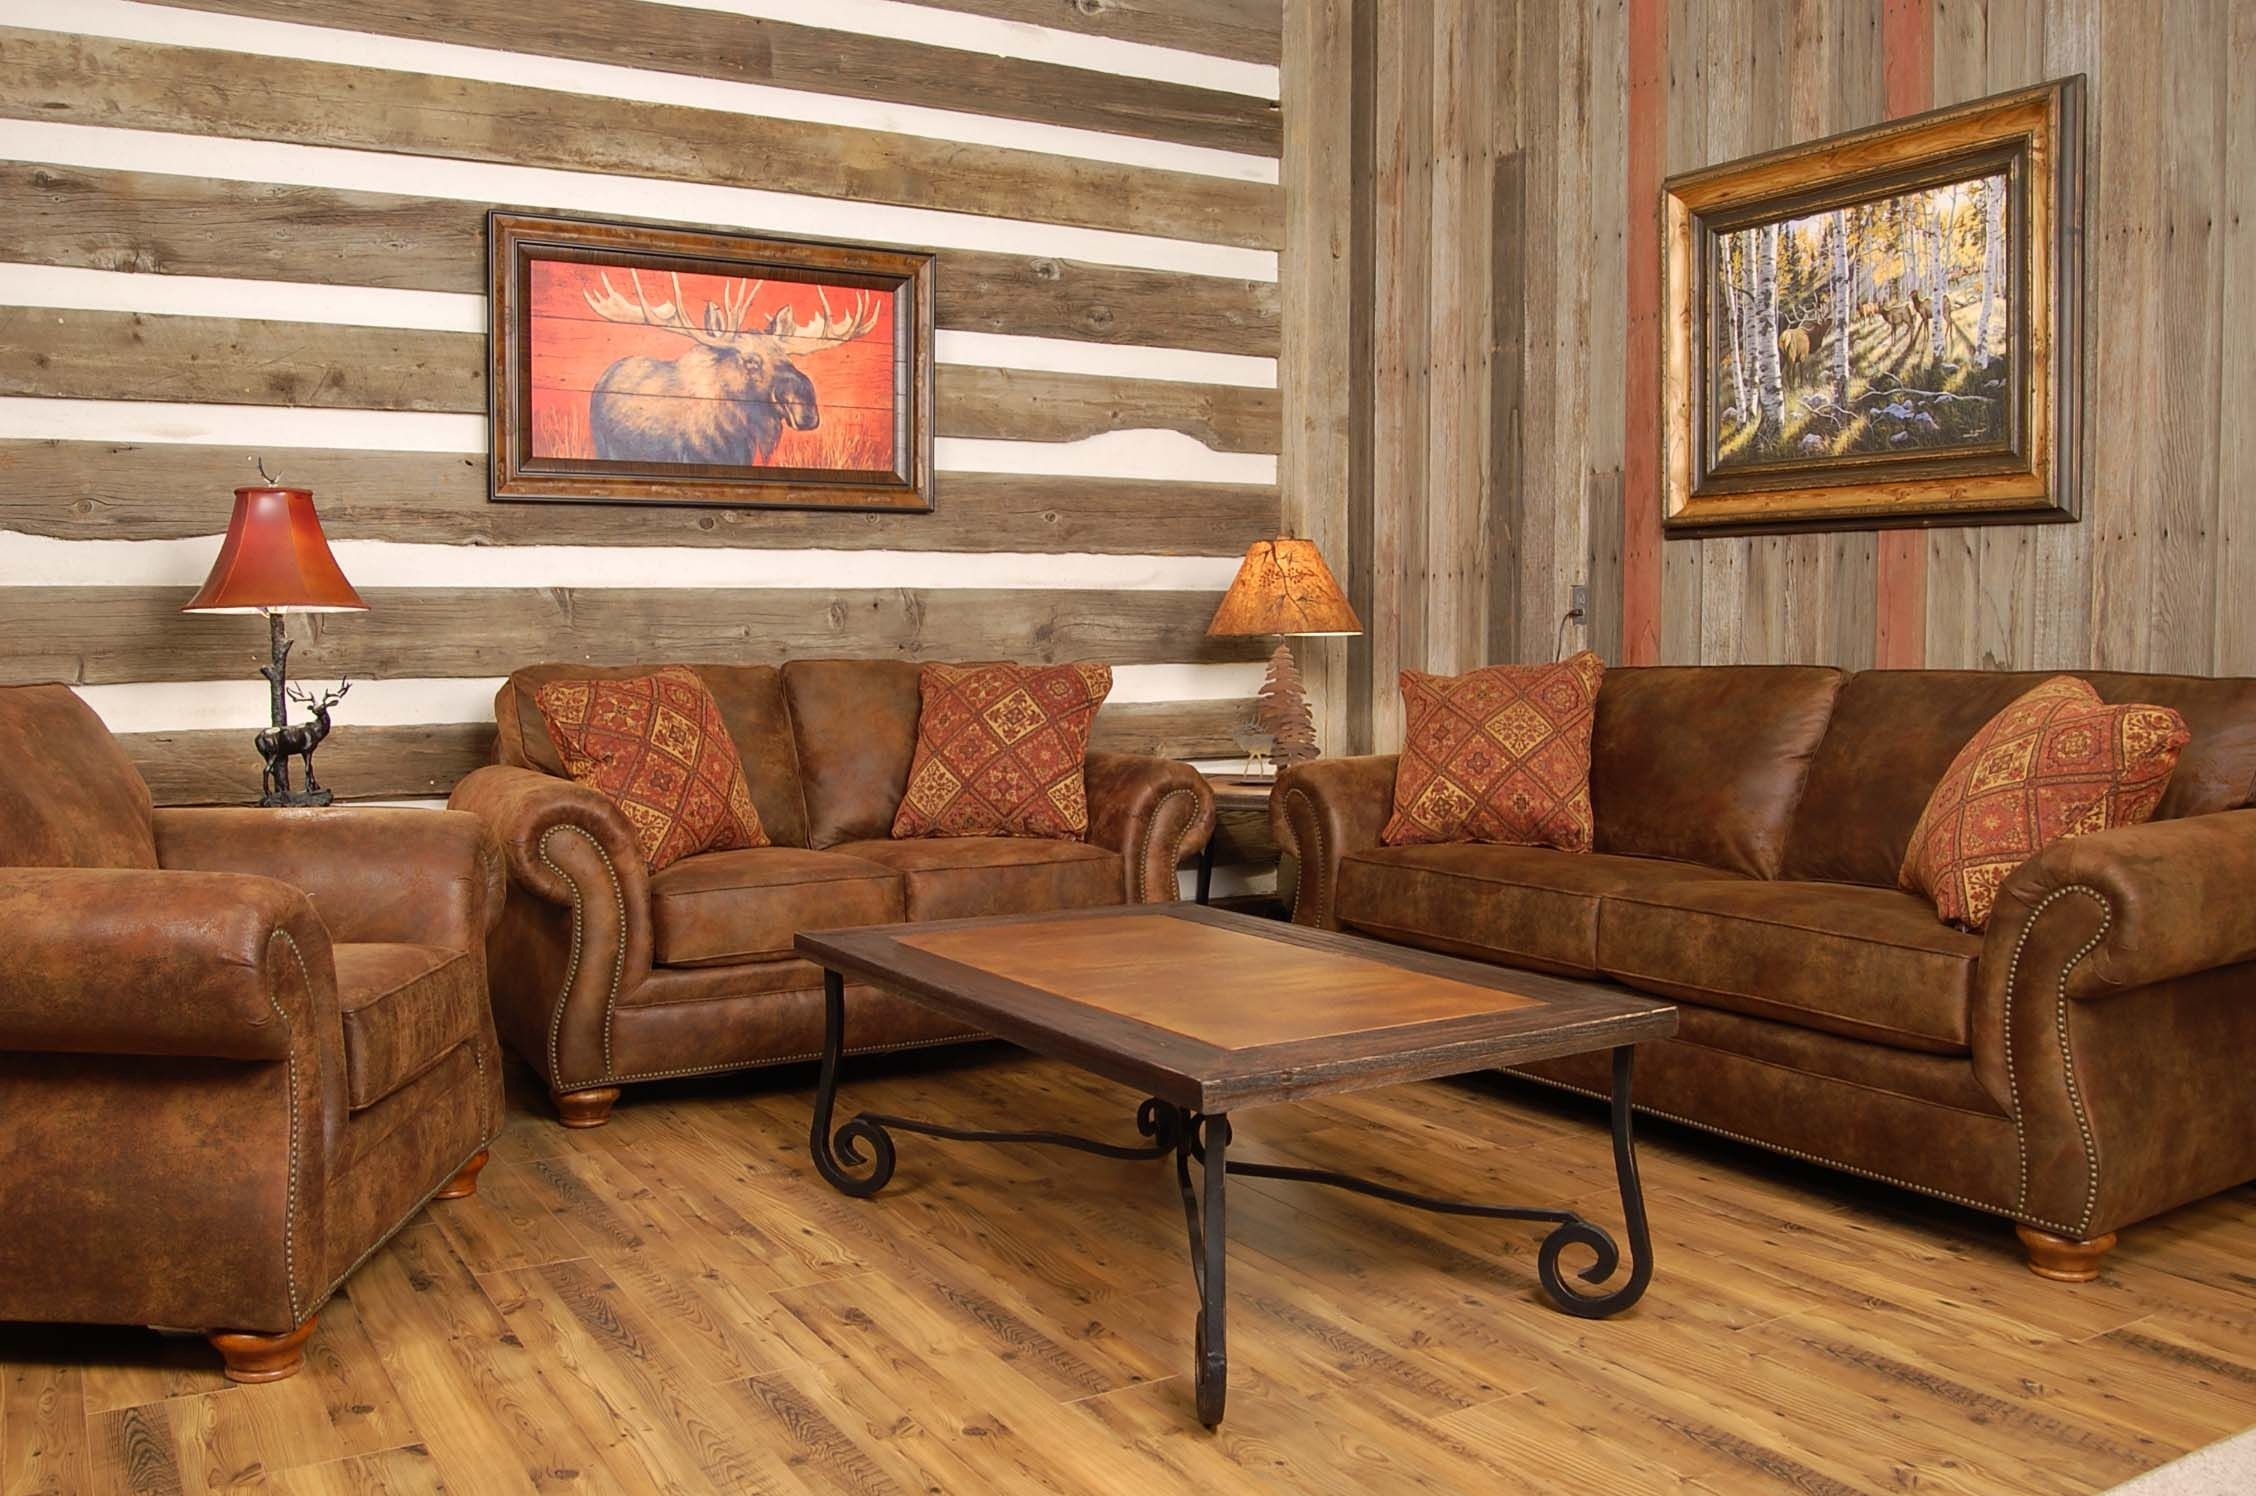 2256x1496 Cool Leather Sofa Set Wallpapers Odd. country home decor ideas. home decor  help. ...